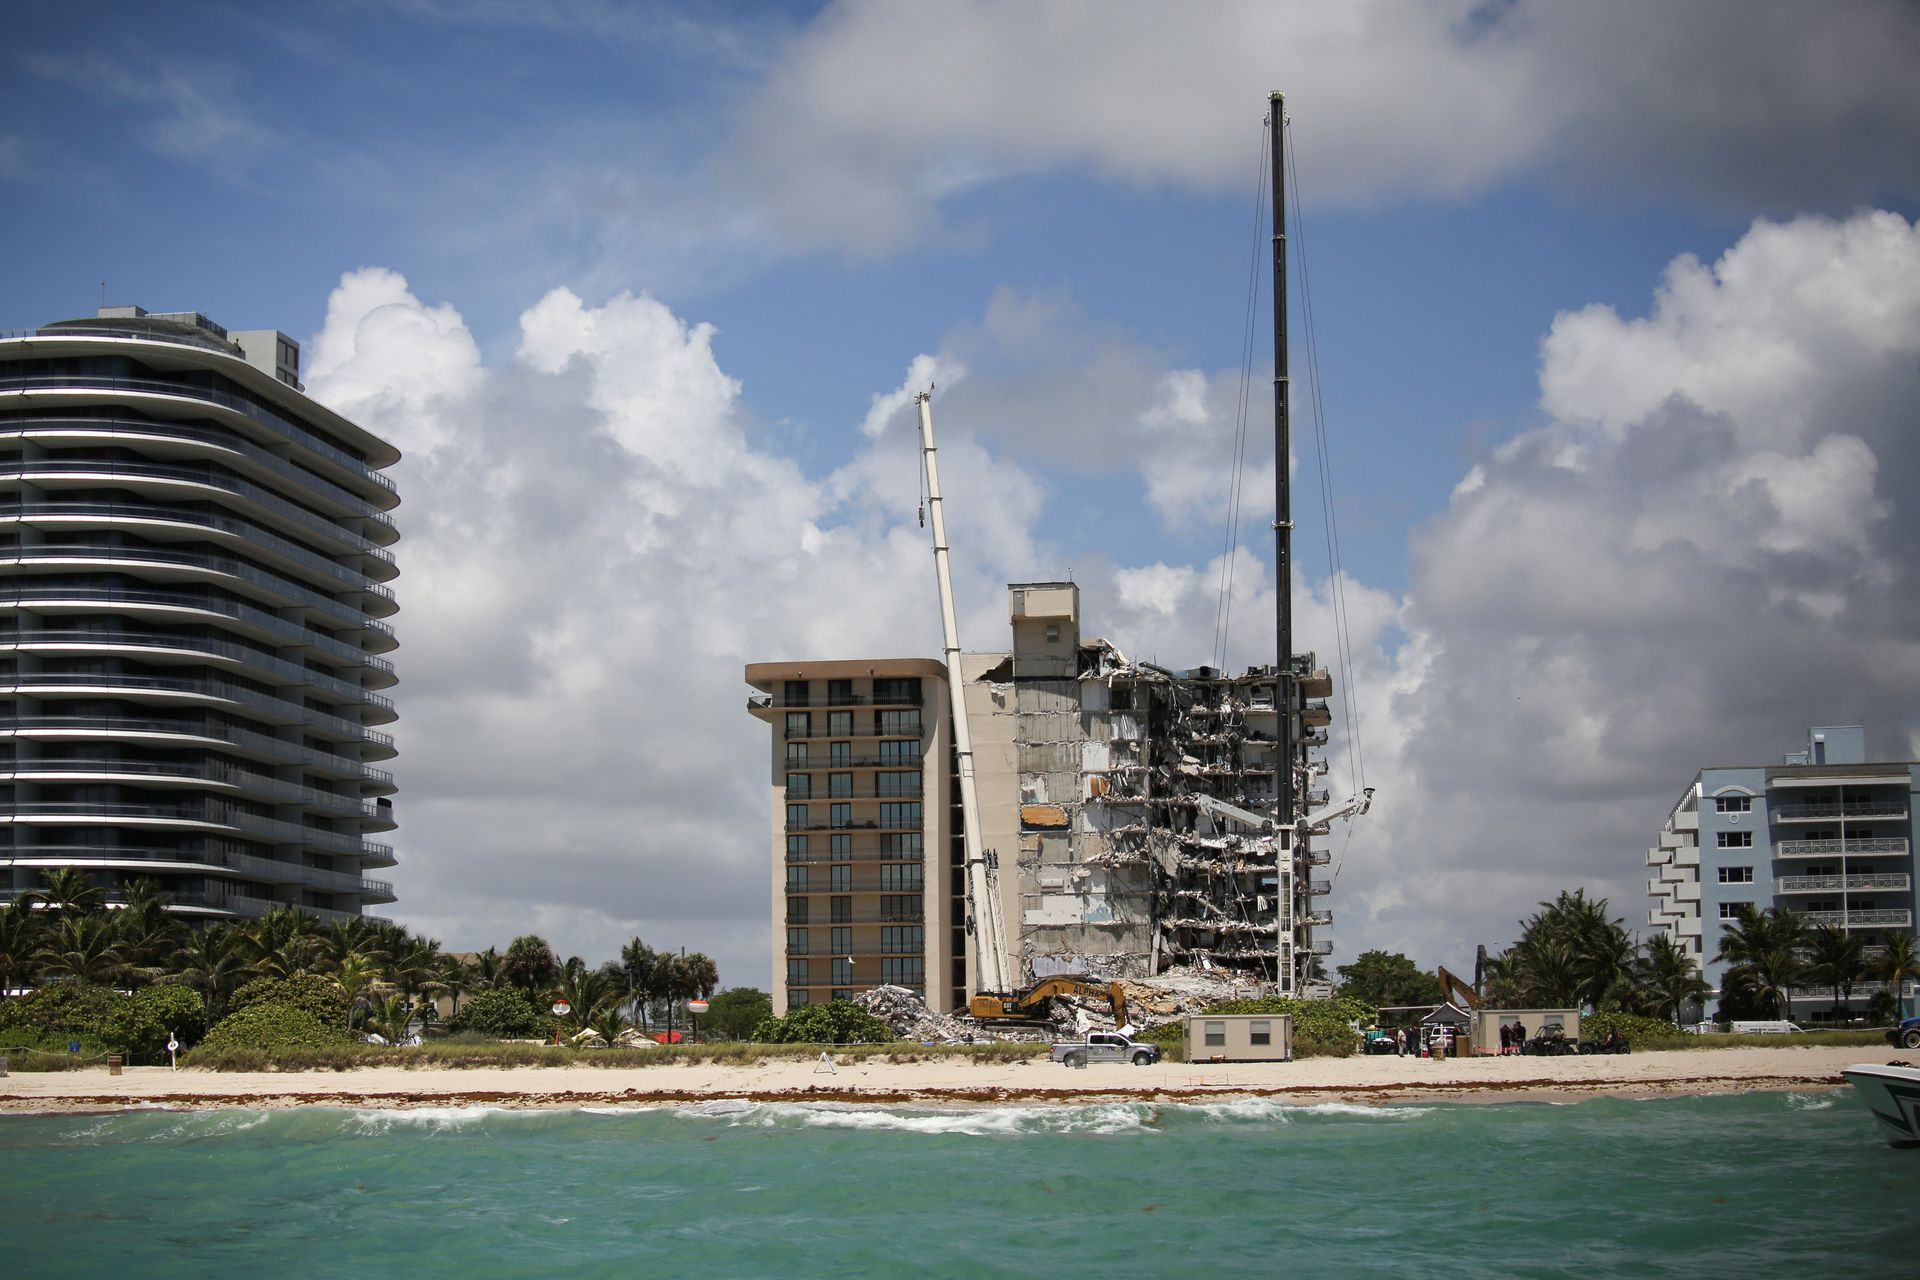 Death Toll in Florida Condo Collapse Rises to 94, With 22 People Still Unaccounted For